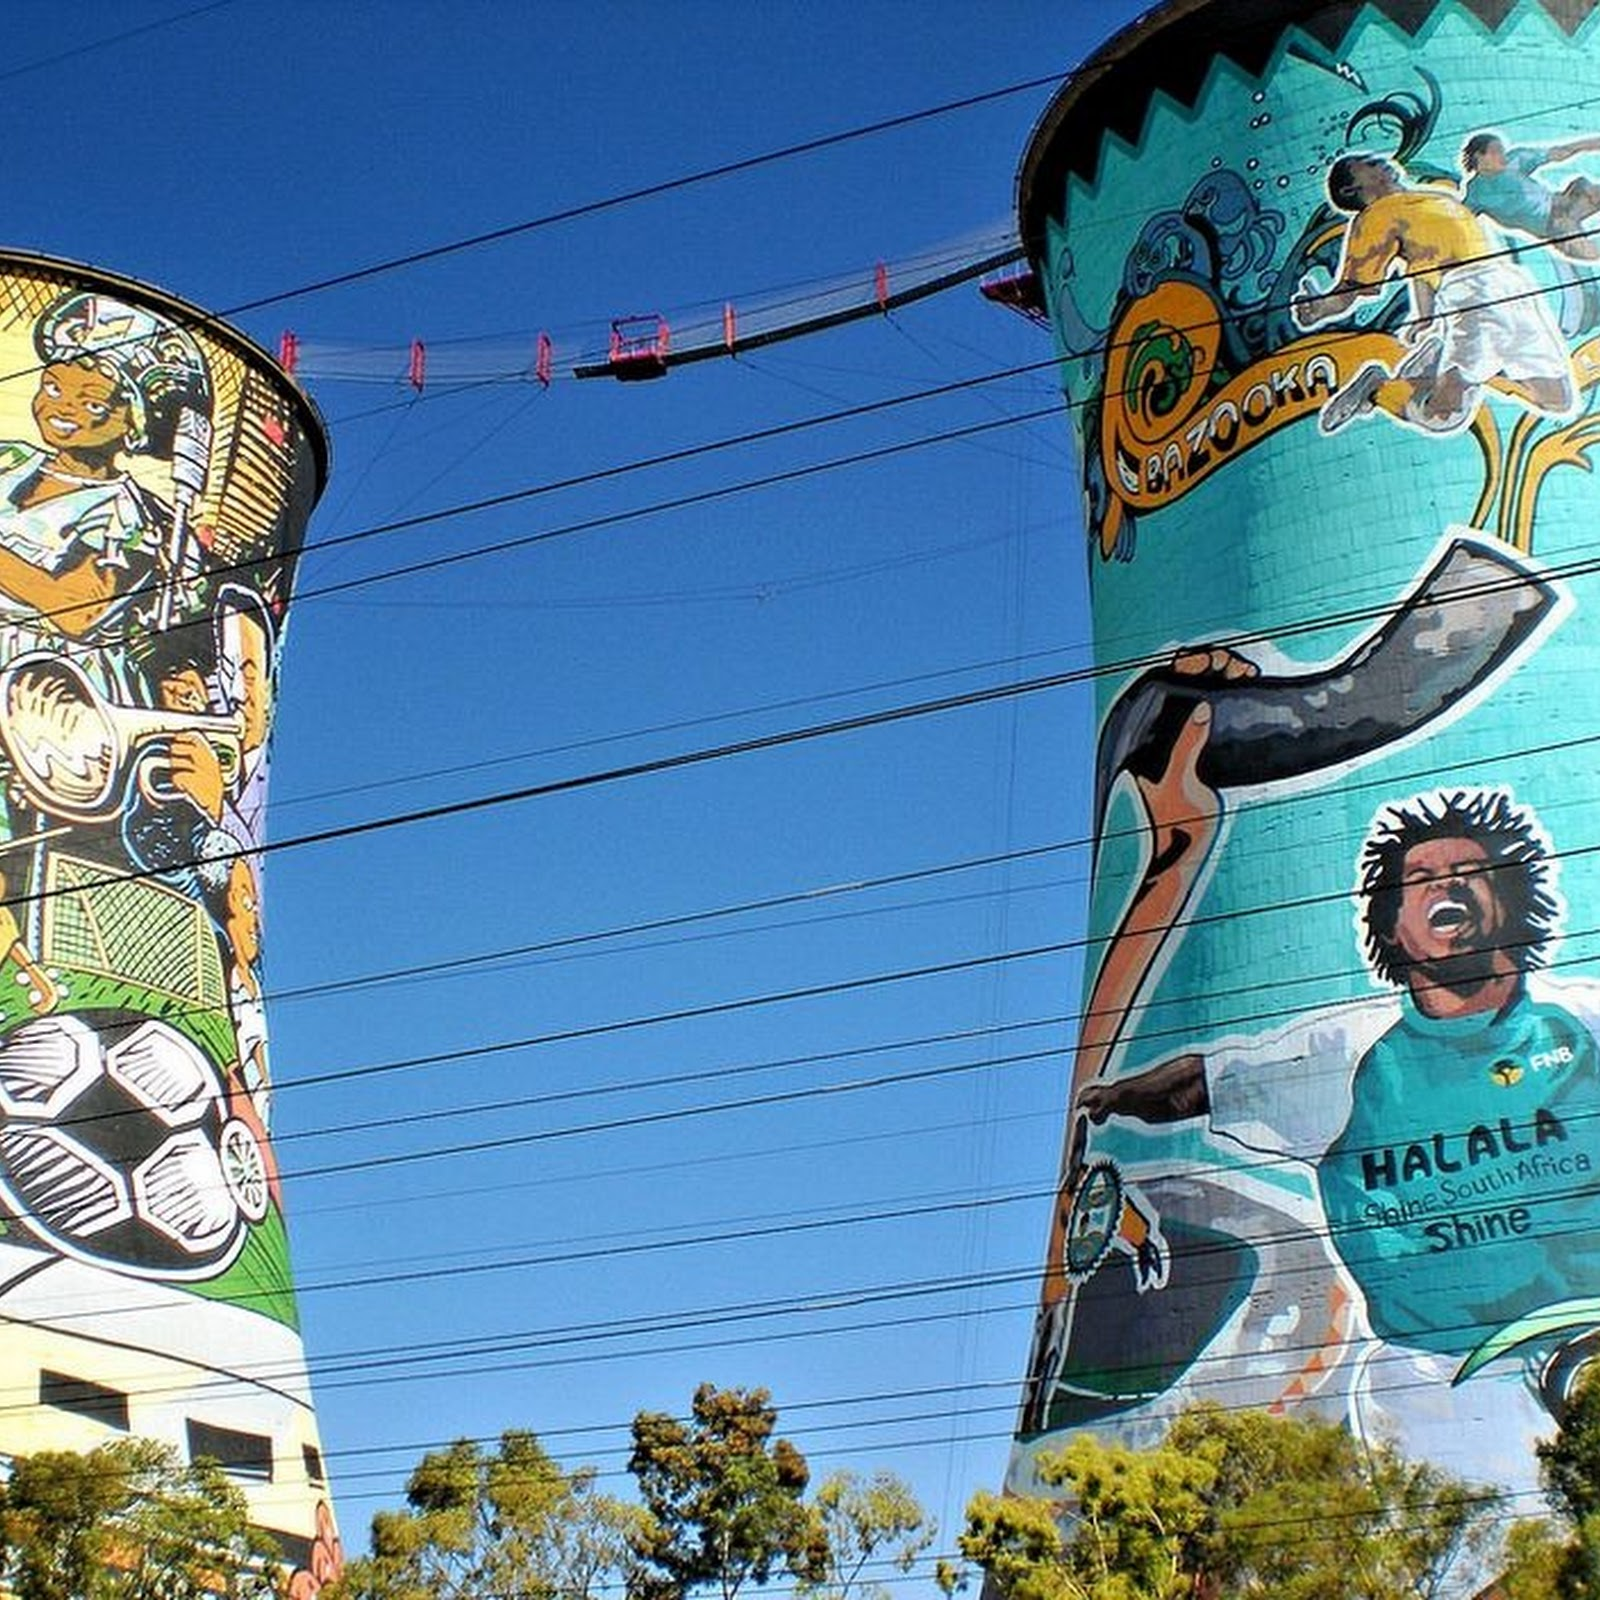 Orlando Towers in Johannesburg